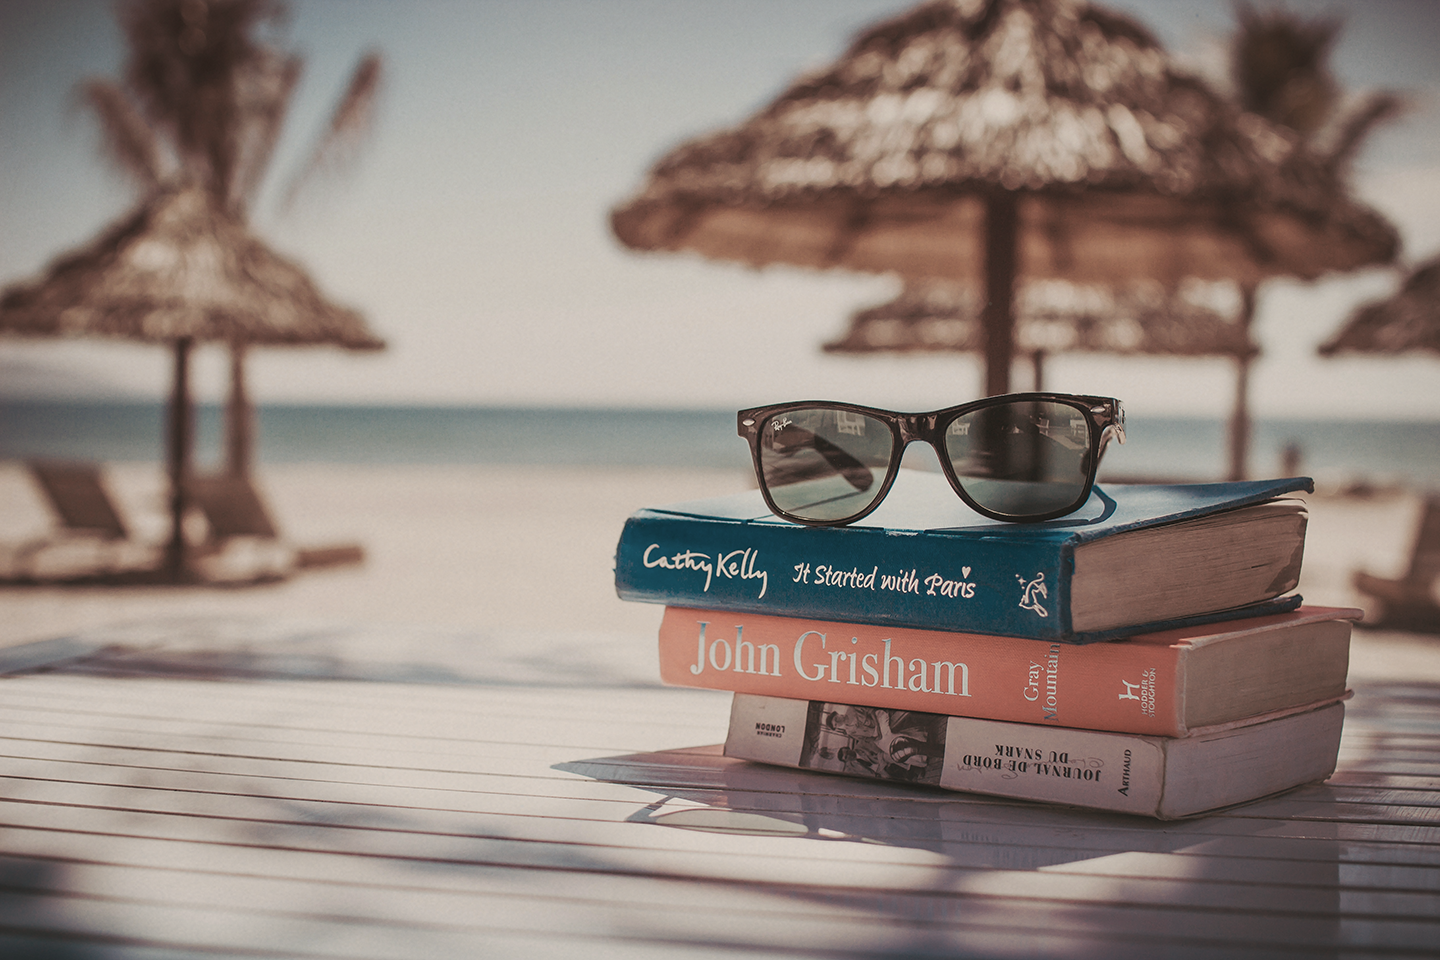 Vacation photo by the beach, sunglasses and books